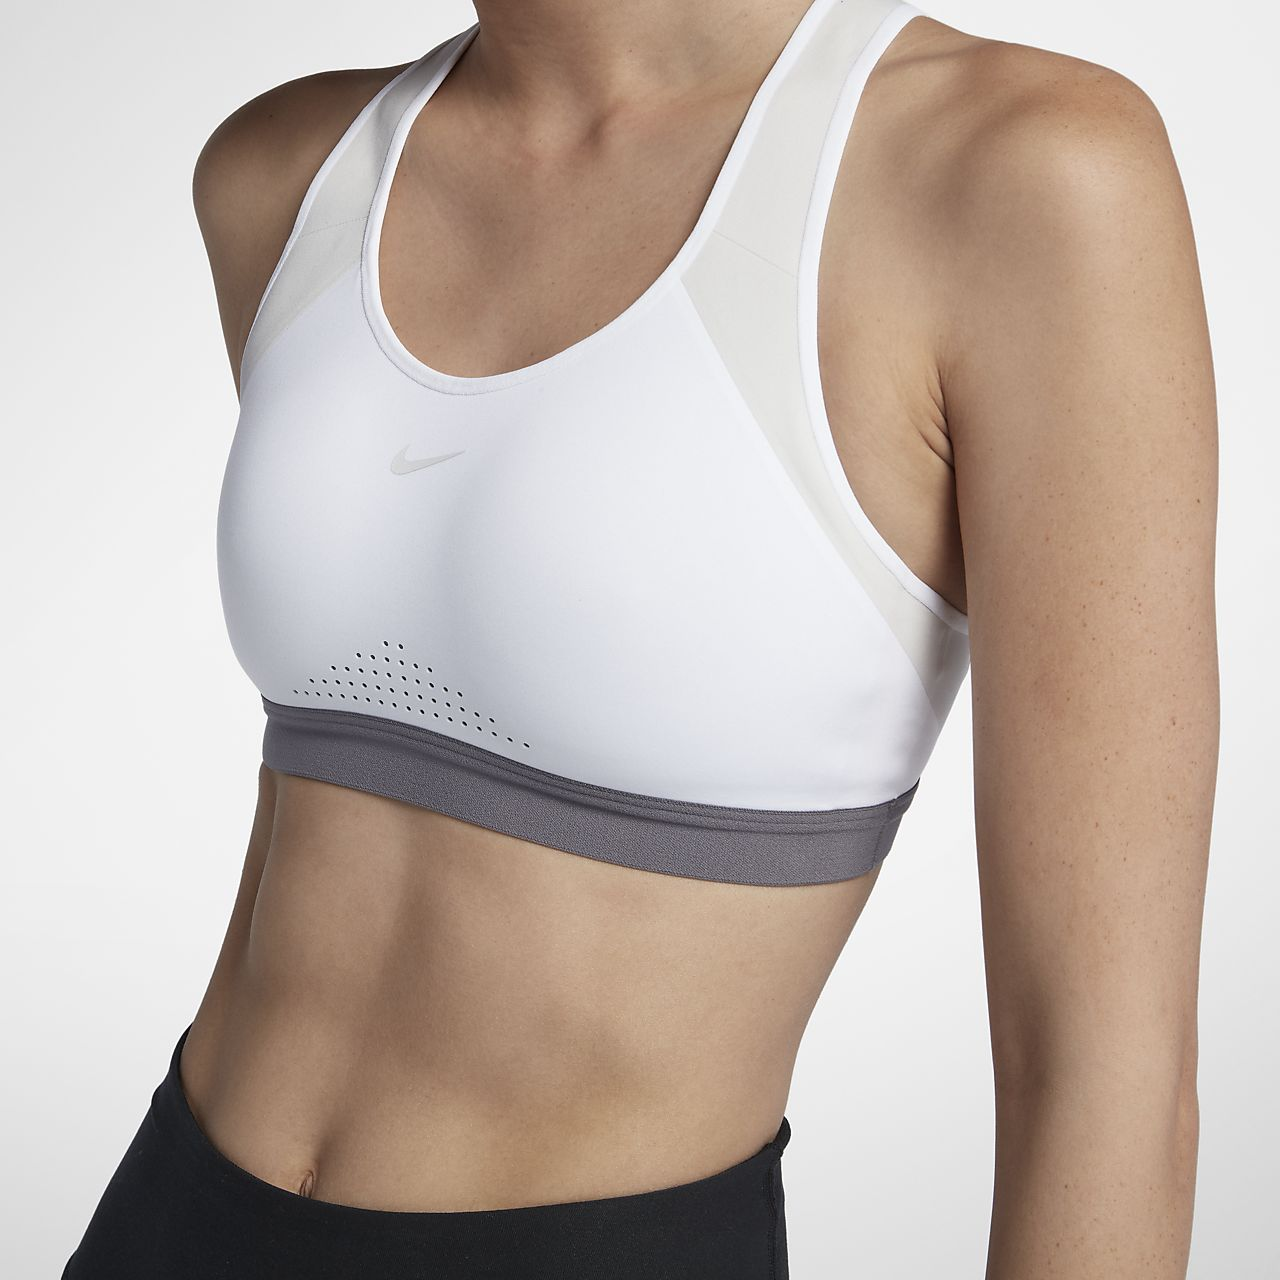 522a557fd0 Low Resolution Nike Motion Adapt Women s Sports Bra Nike Motion Adapt  Women s Sports Bra